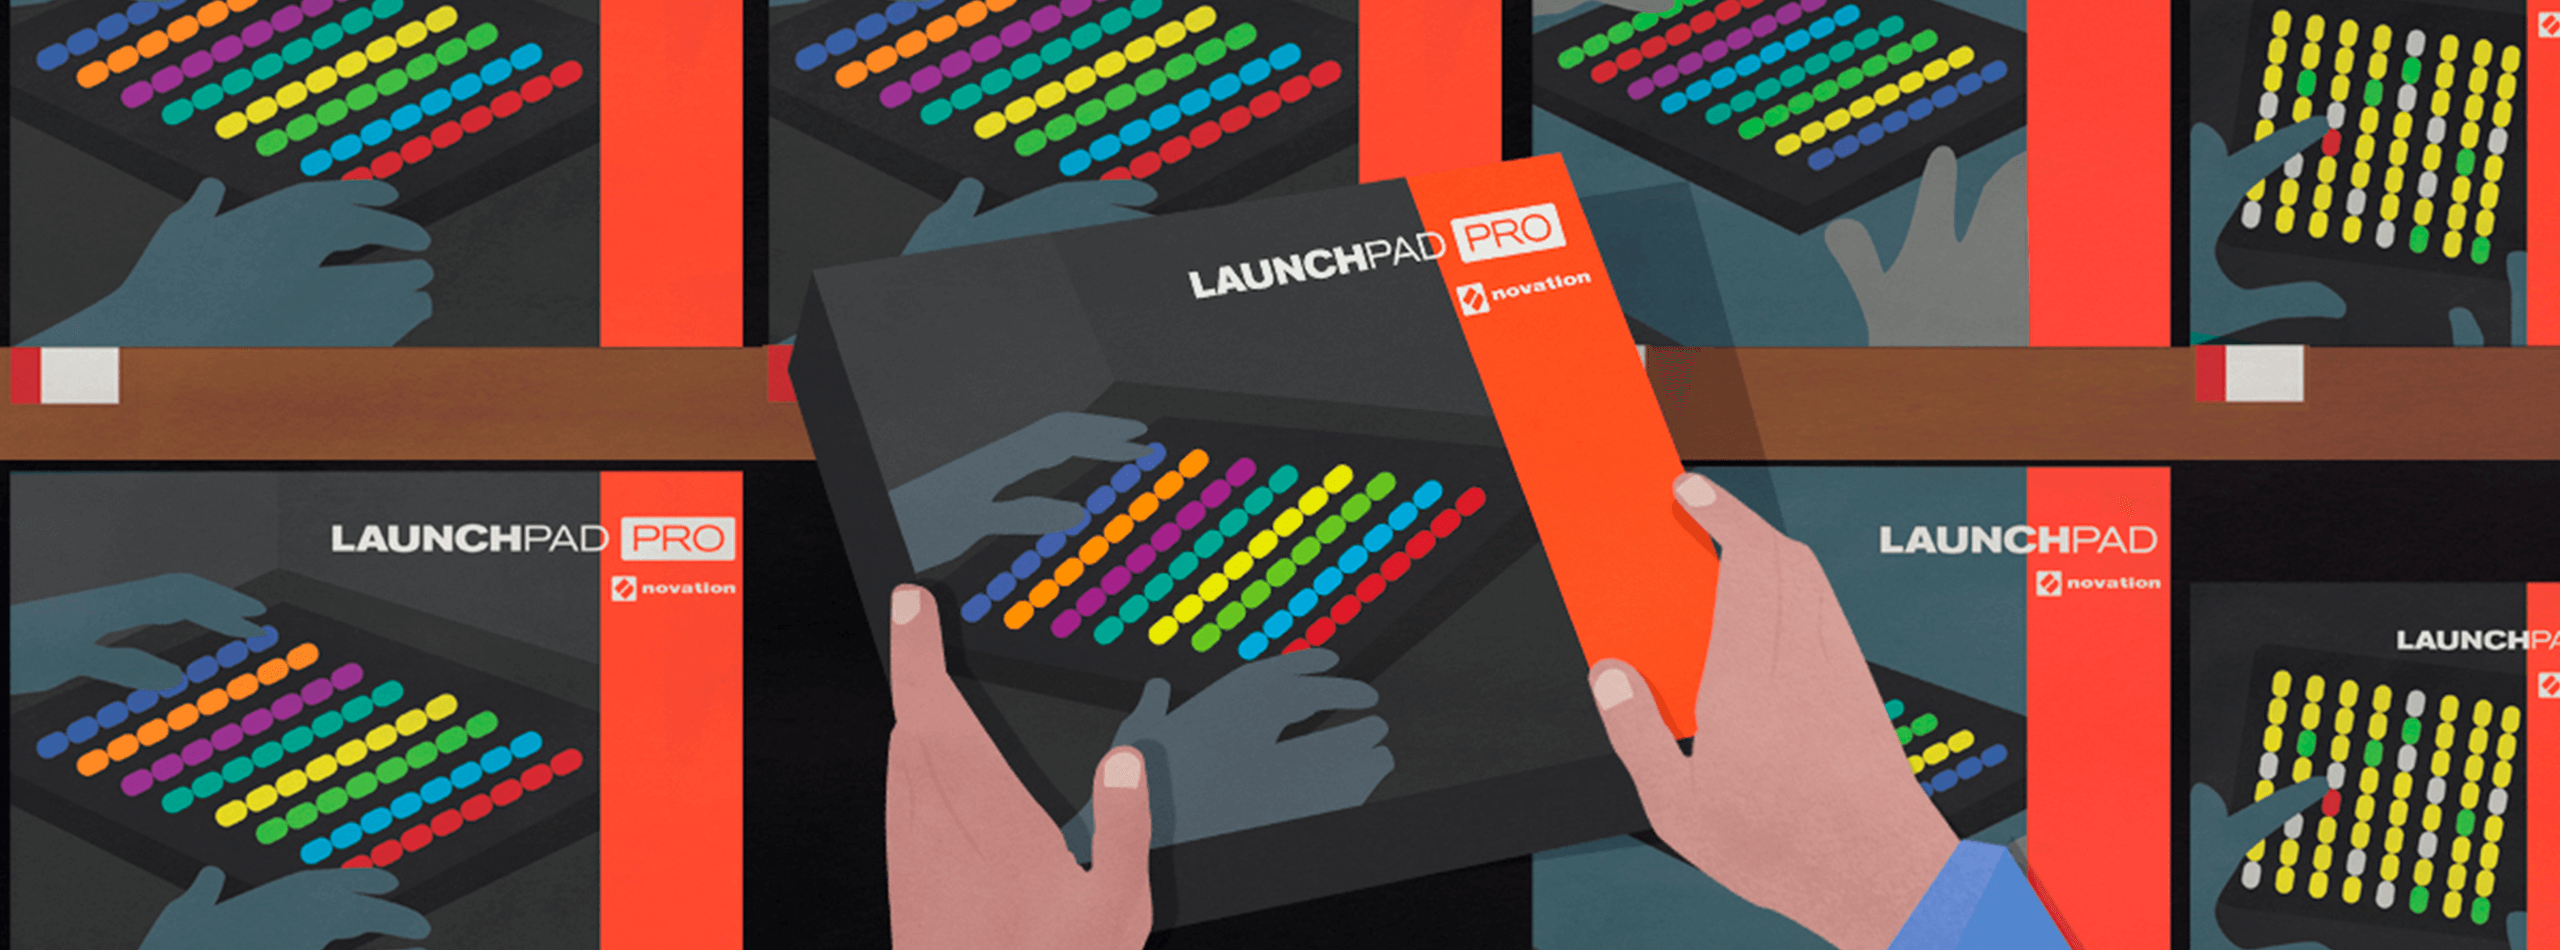 Step 3 Choose The Launchpad That's Best For You